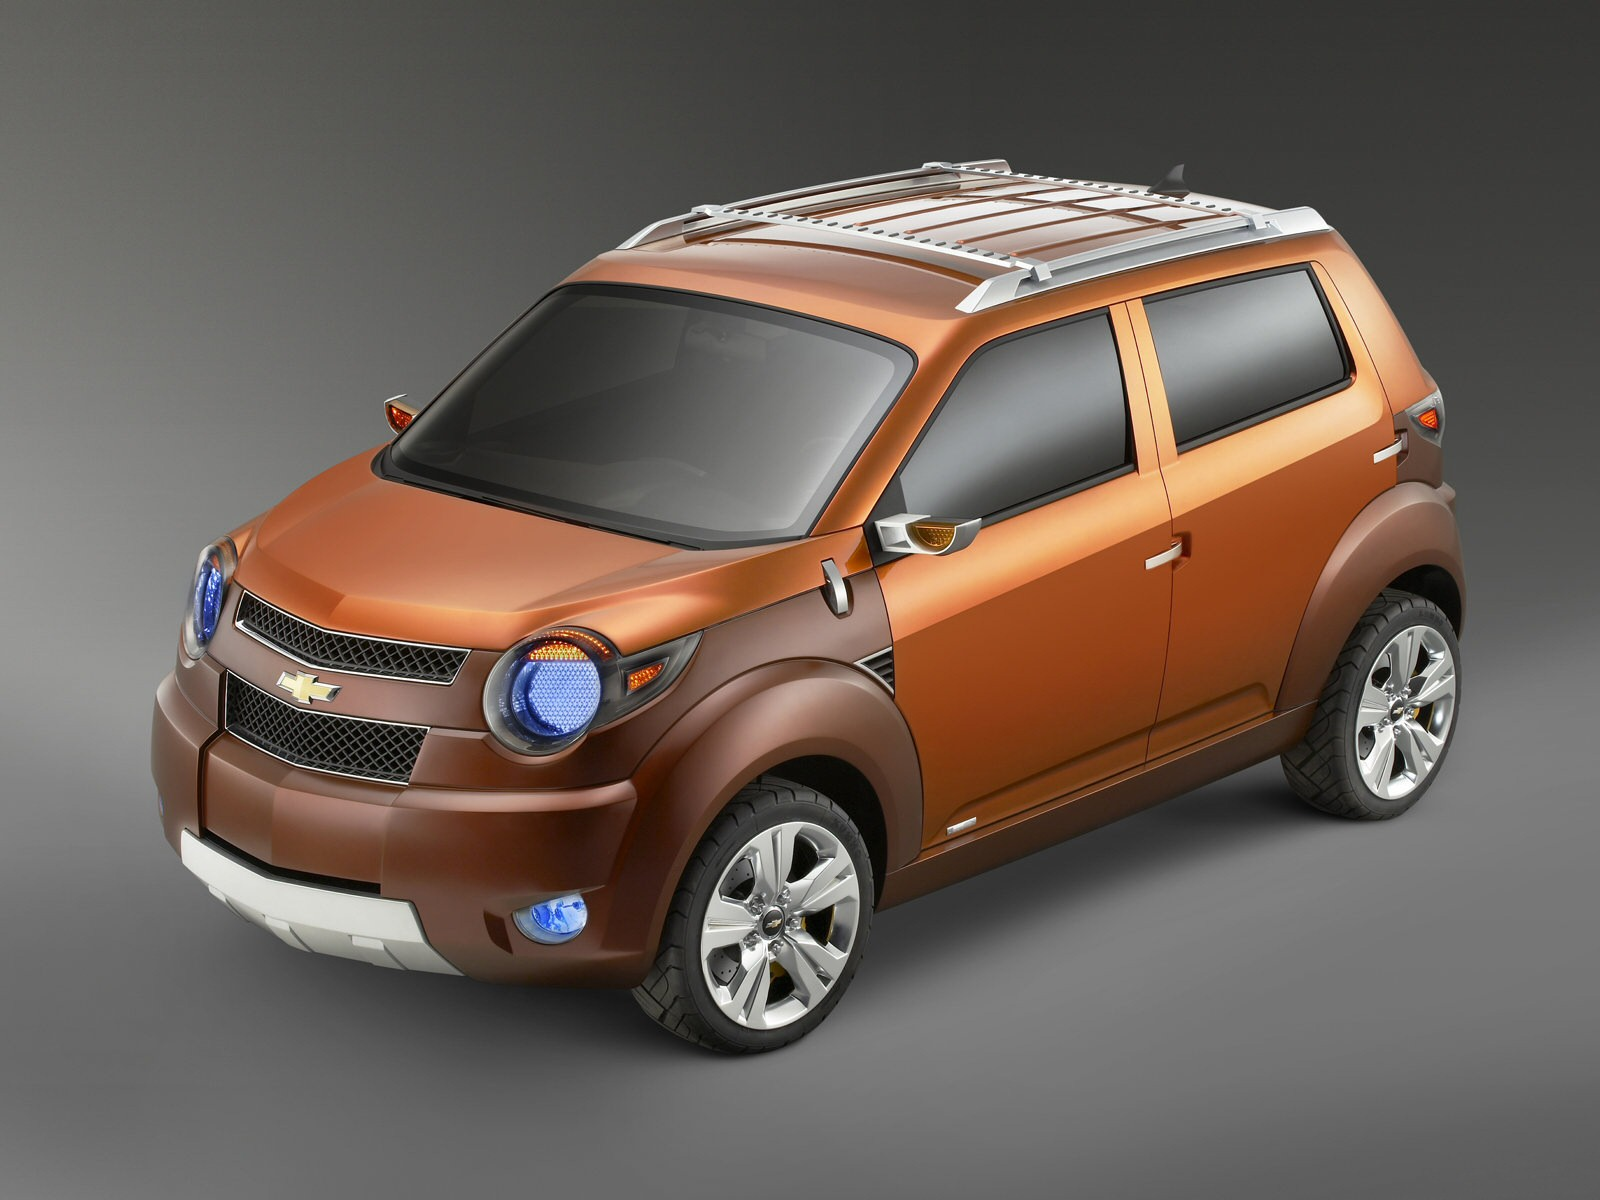 Chevrolet Trax Concept 2007 Chevrolet Trax Concept 2007 Photo 02 – Car in pictures - car photo ...